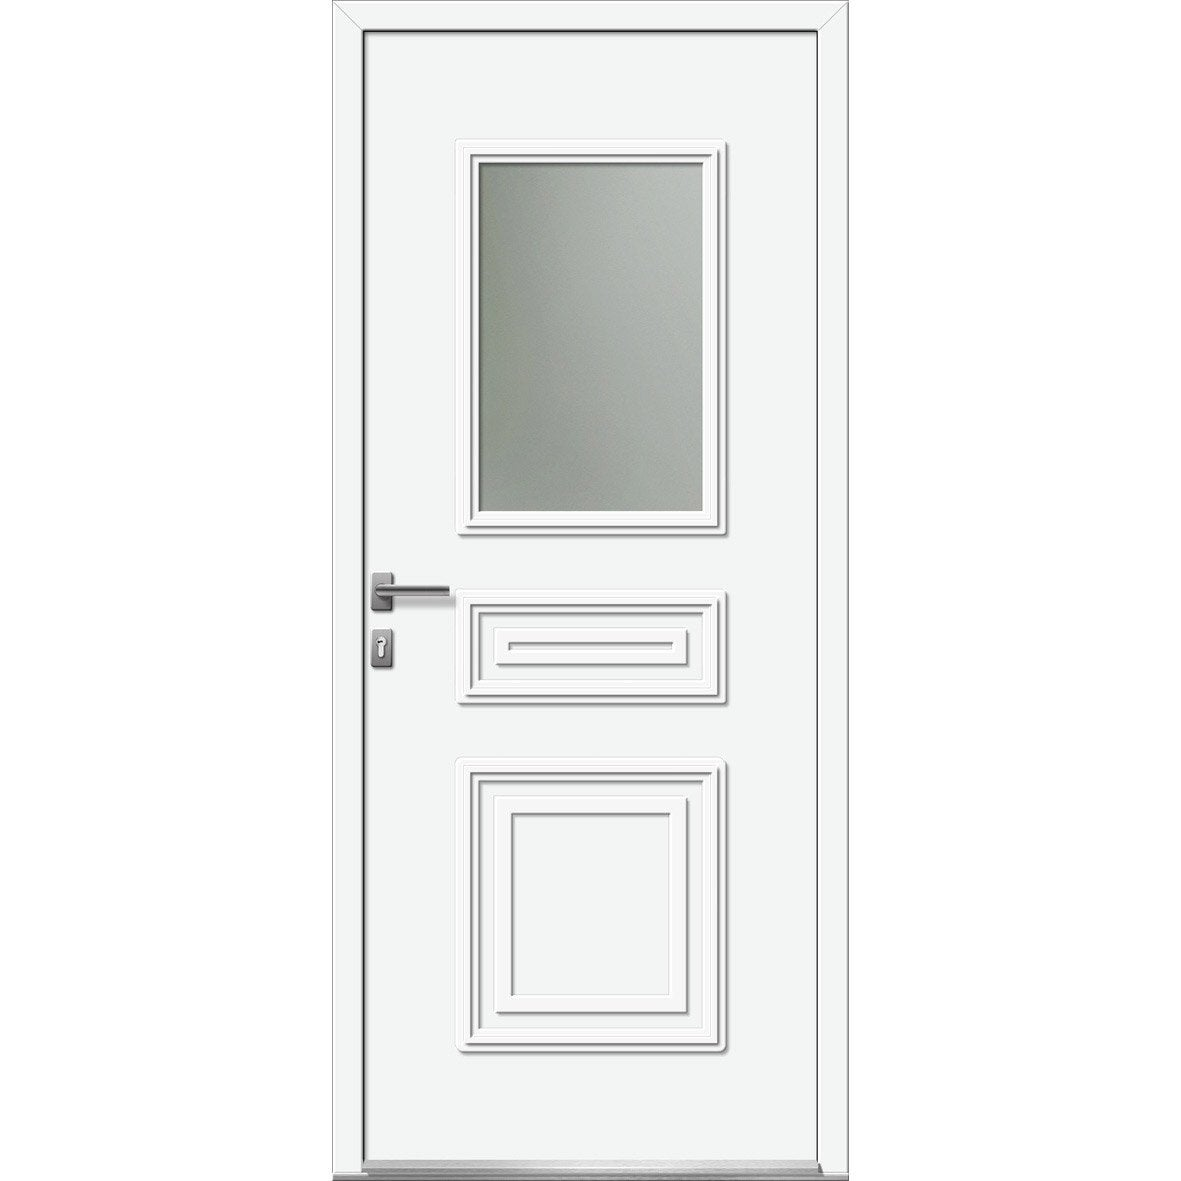 Porte sur mesure leroy merlin maison design for Porte coulissante leroy merlin sur mesure